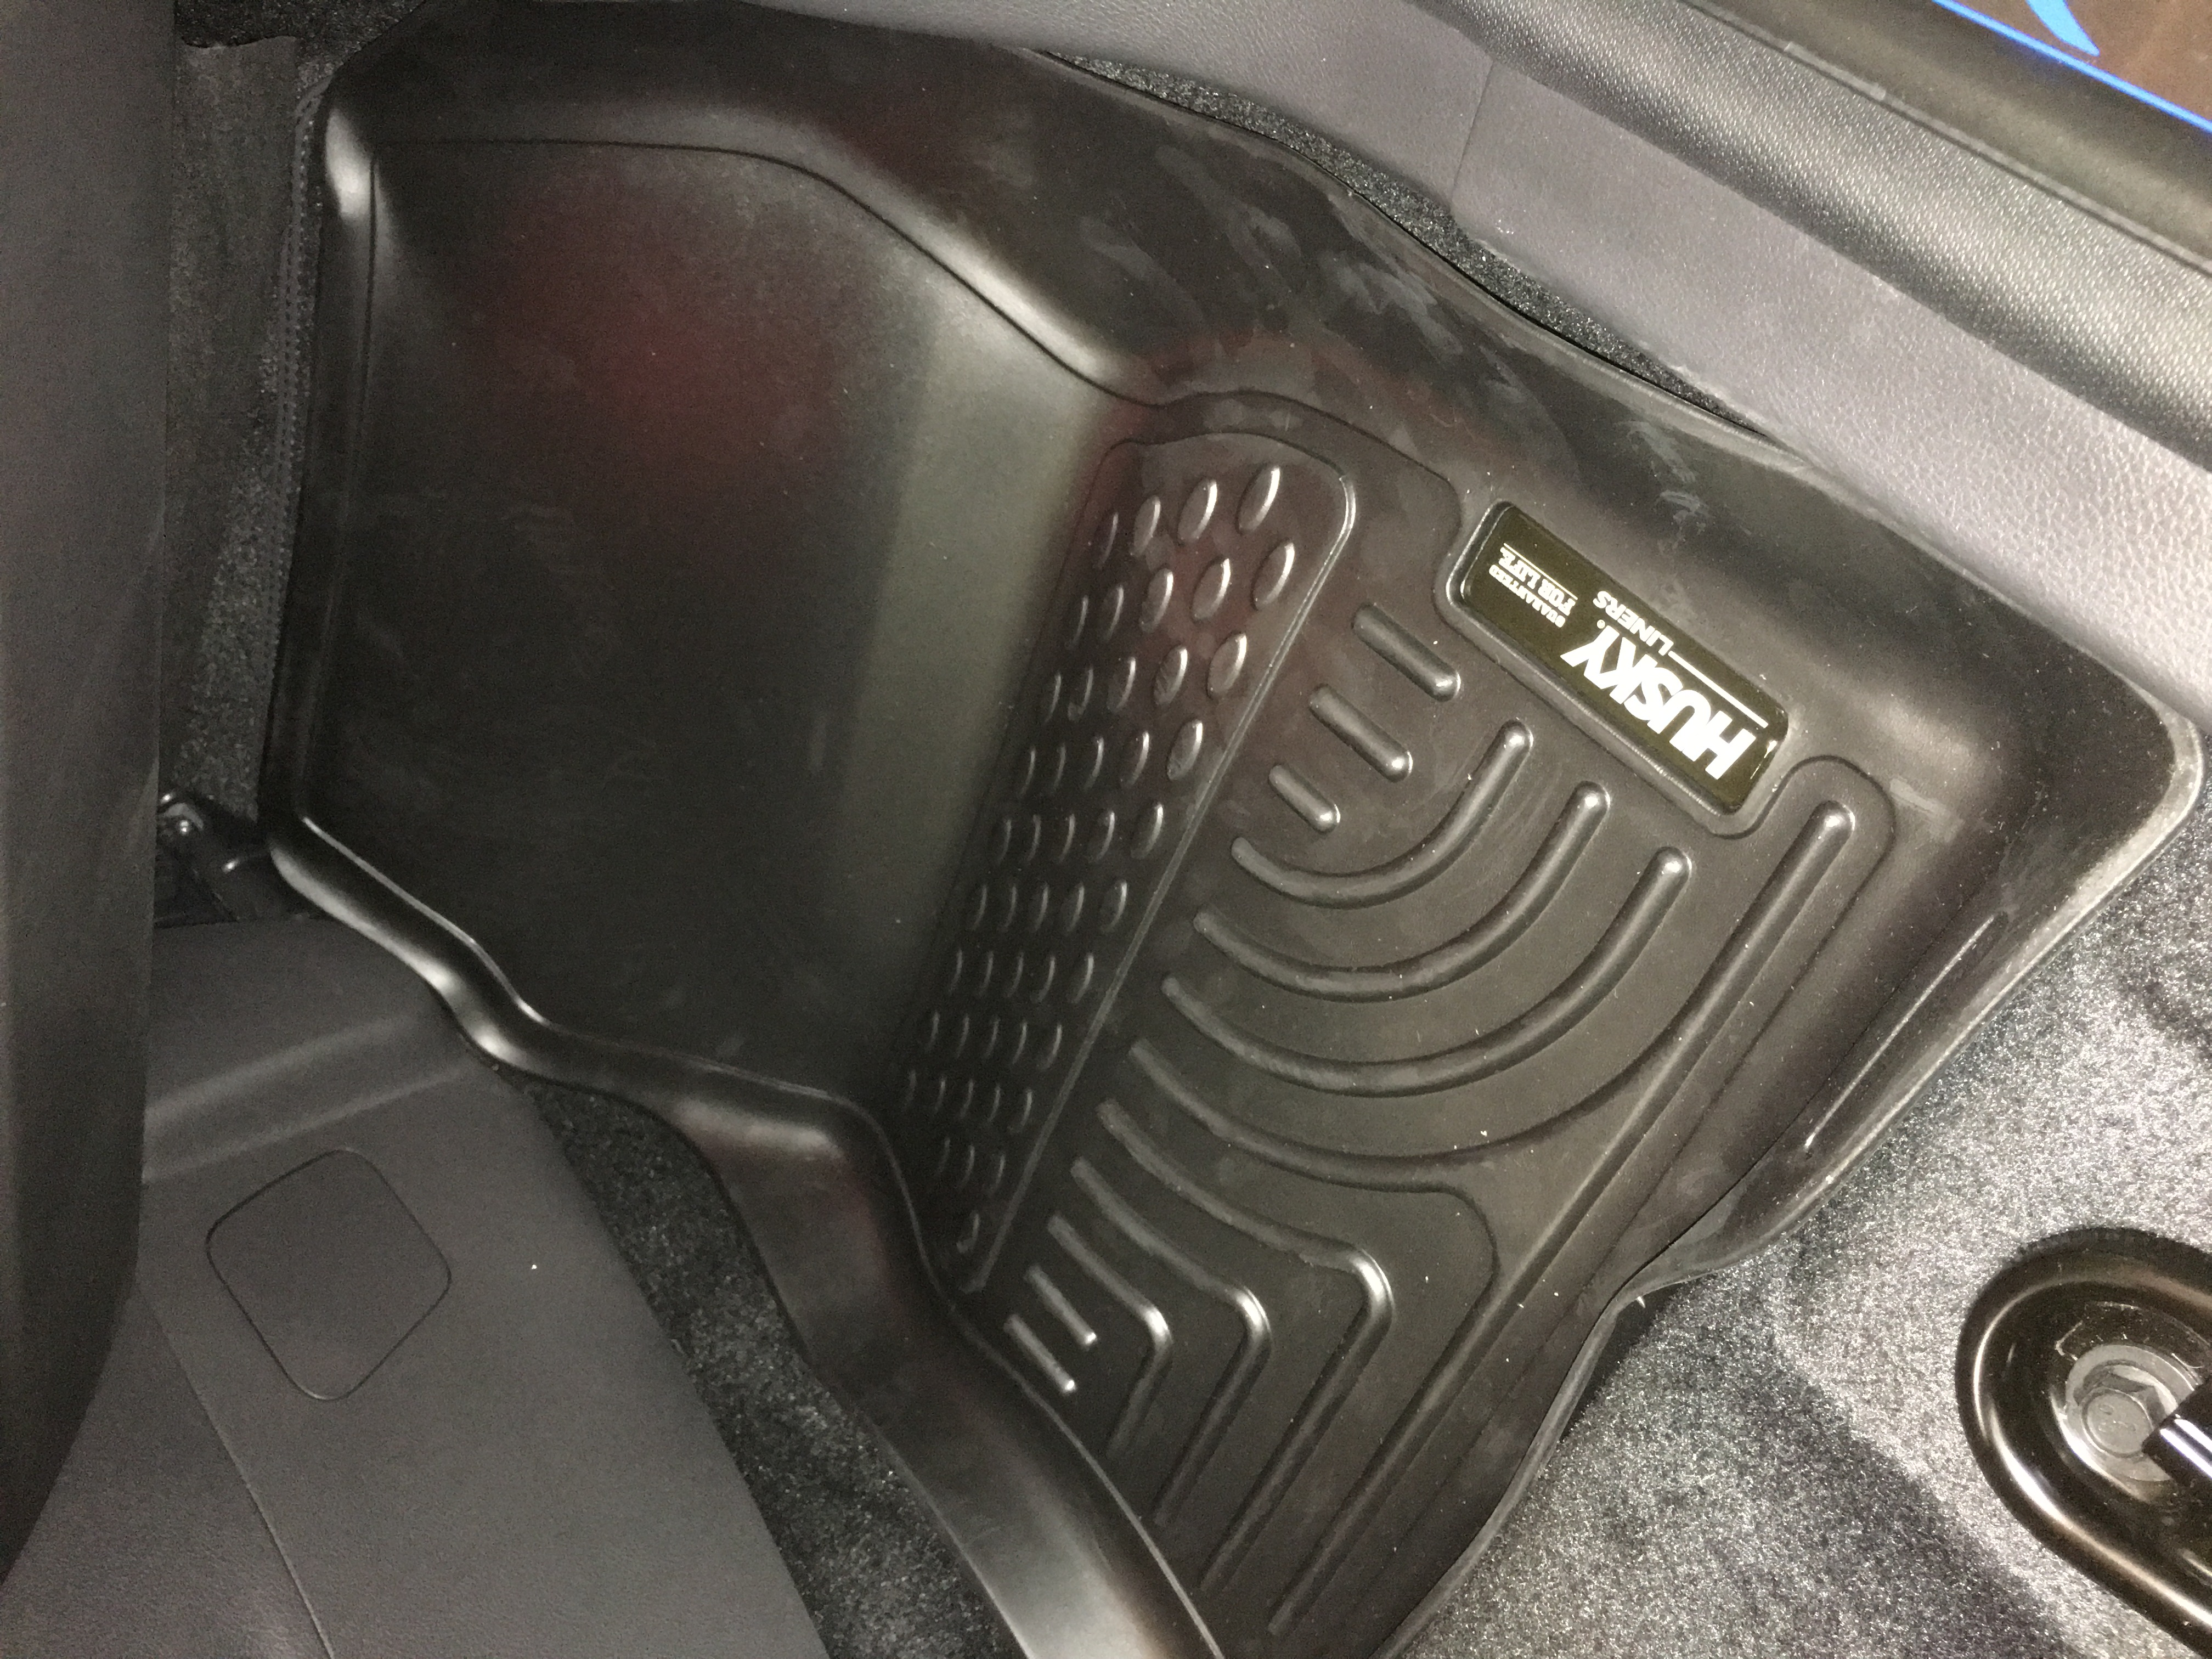 Weathertech floor mats rochester ny - Name Image Jpeg Views 399 Size 2 61 Mb